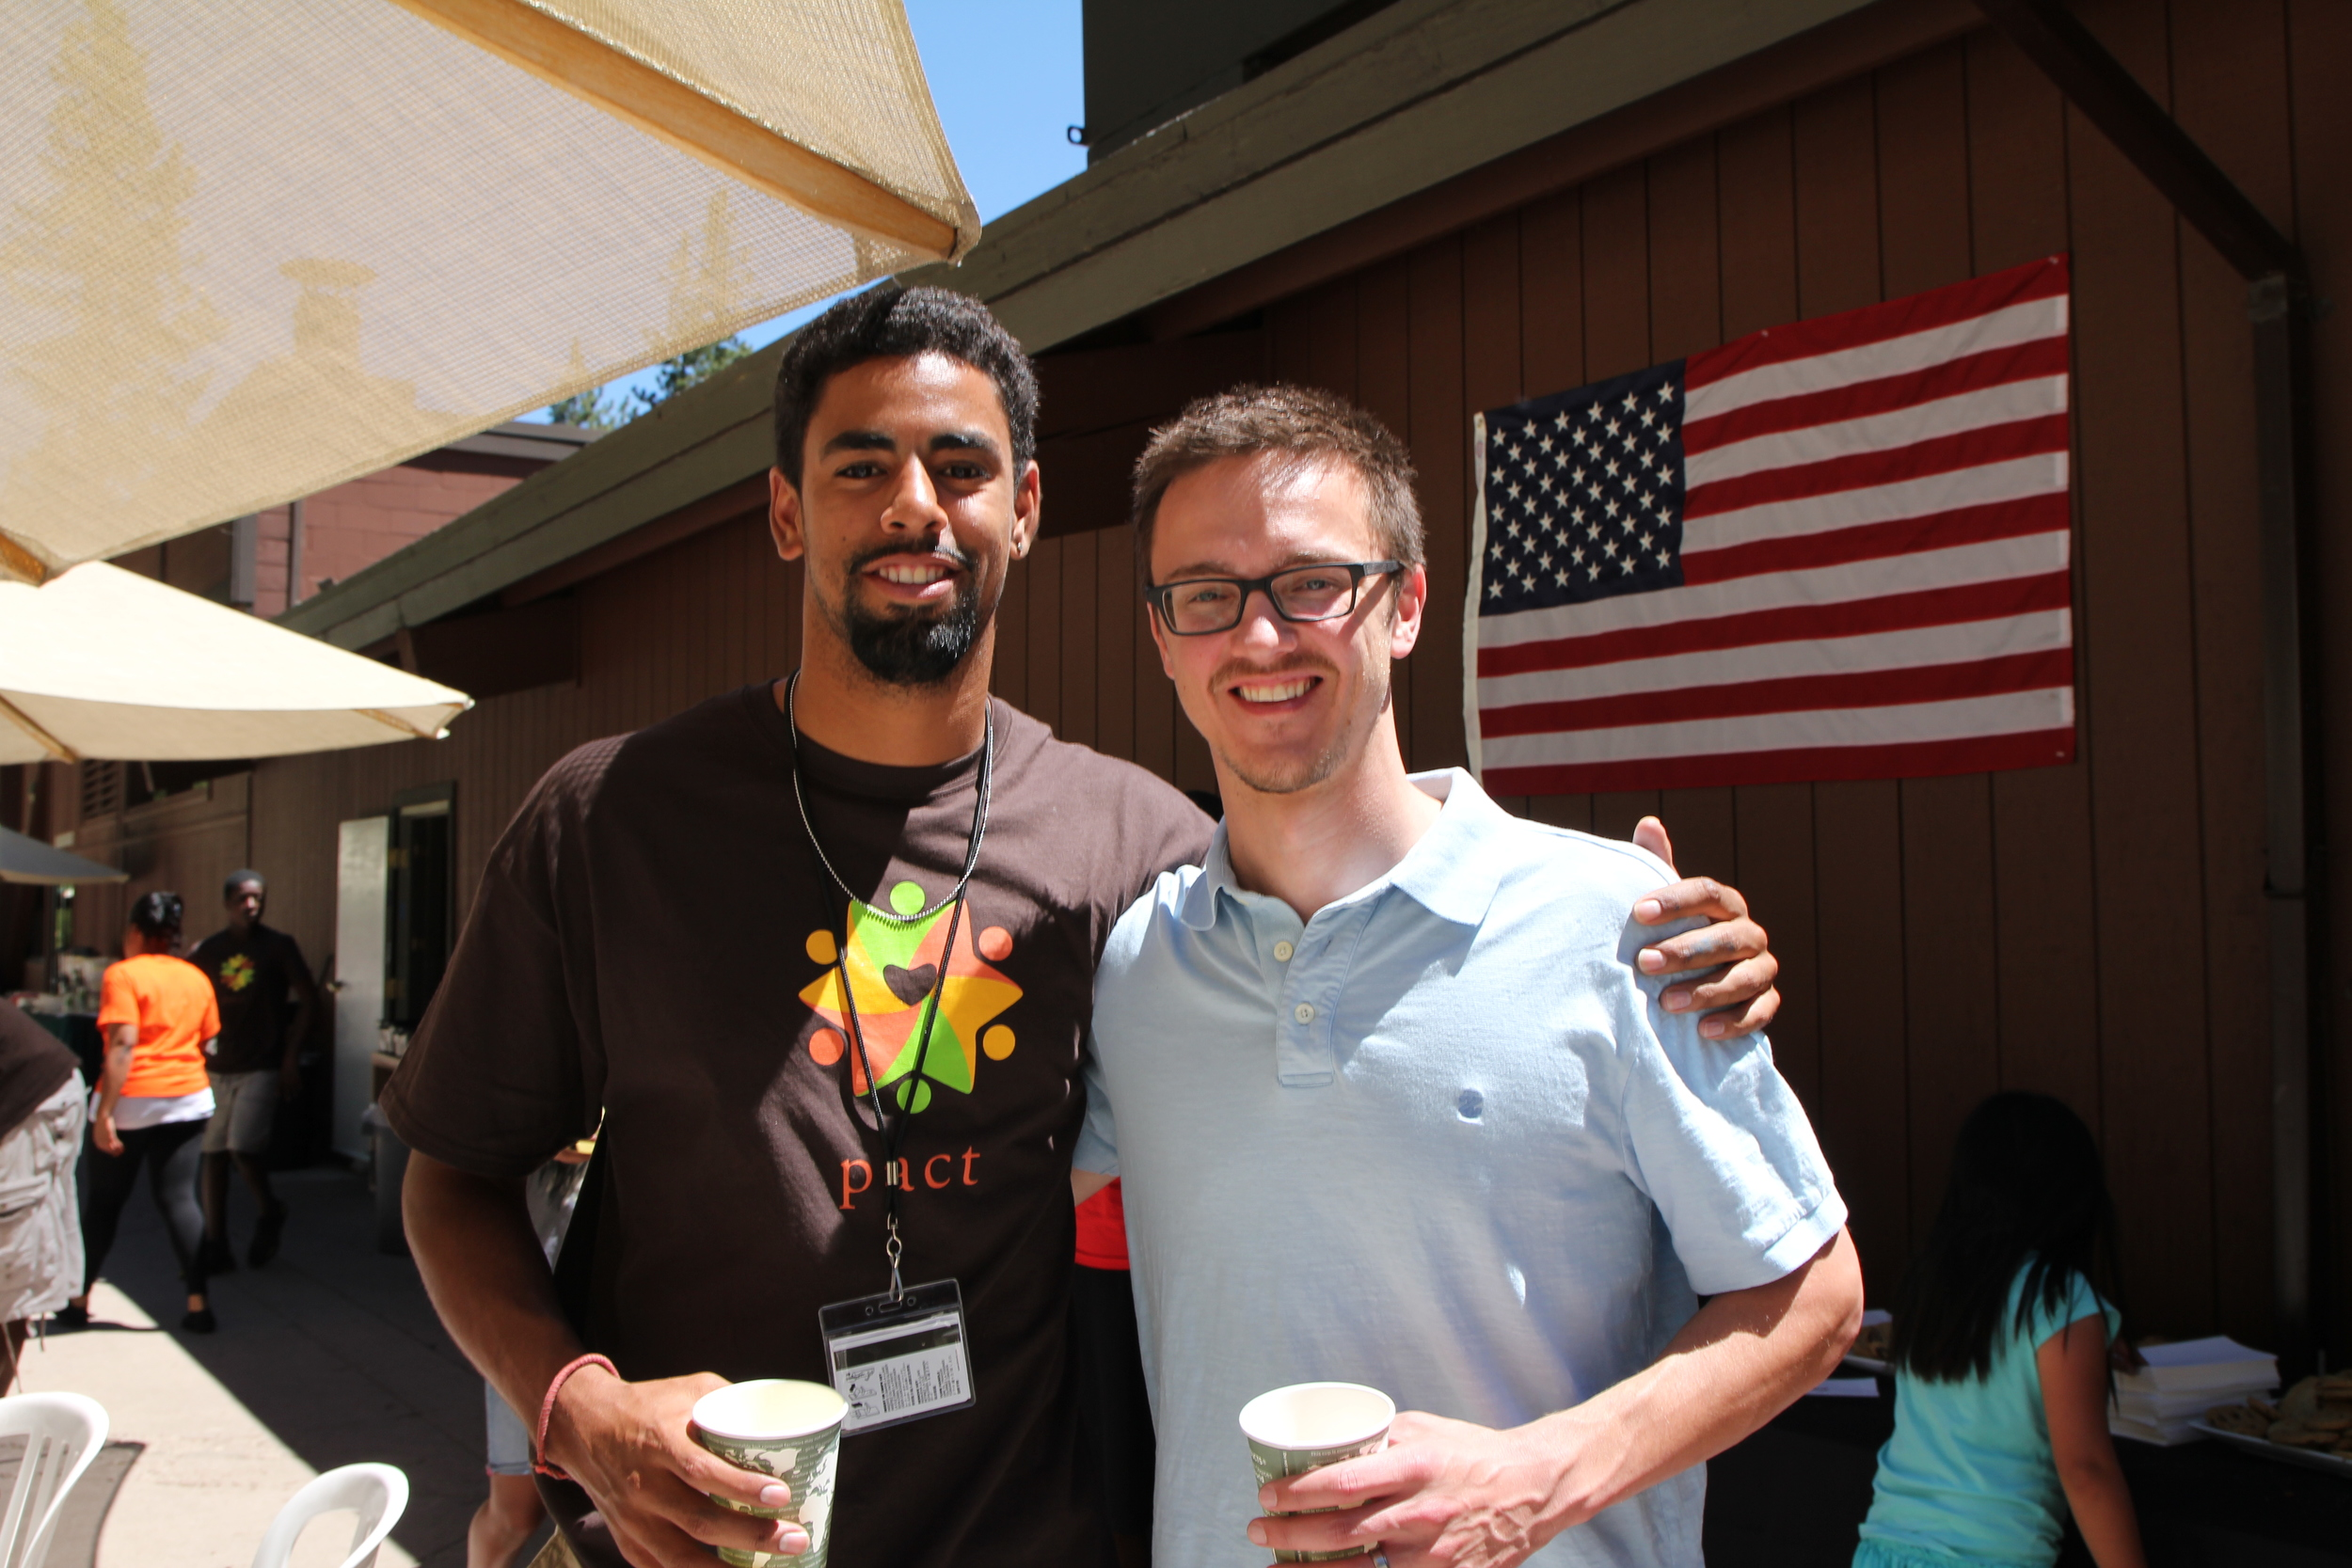 Me with Dwight, a PACT counselor